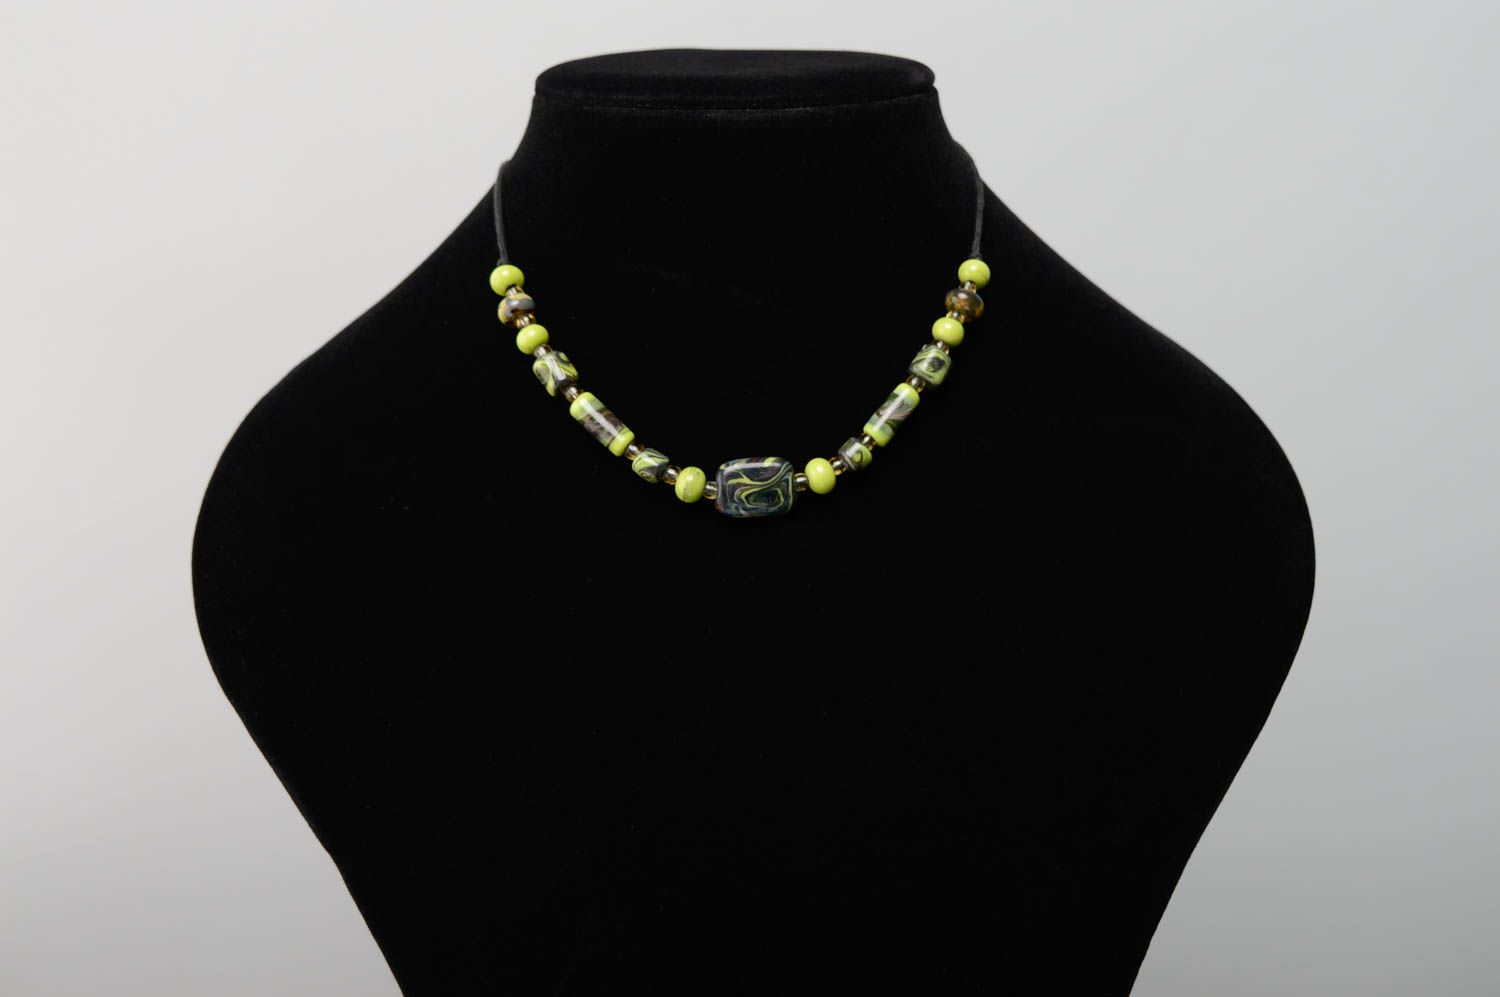 Lampwork glass necklace photo 3